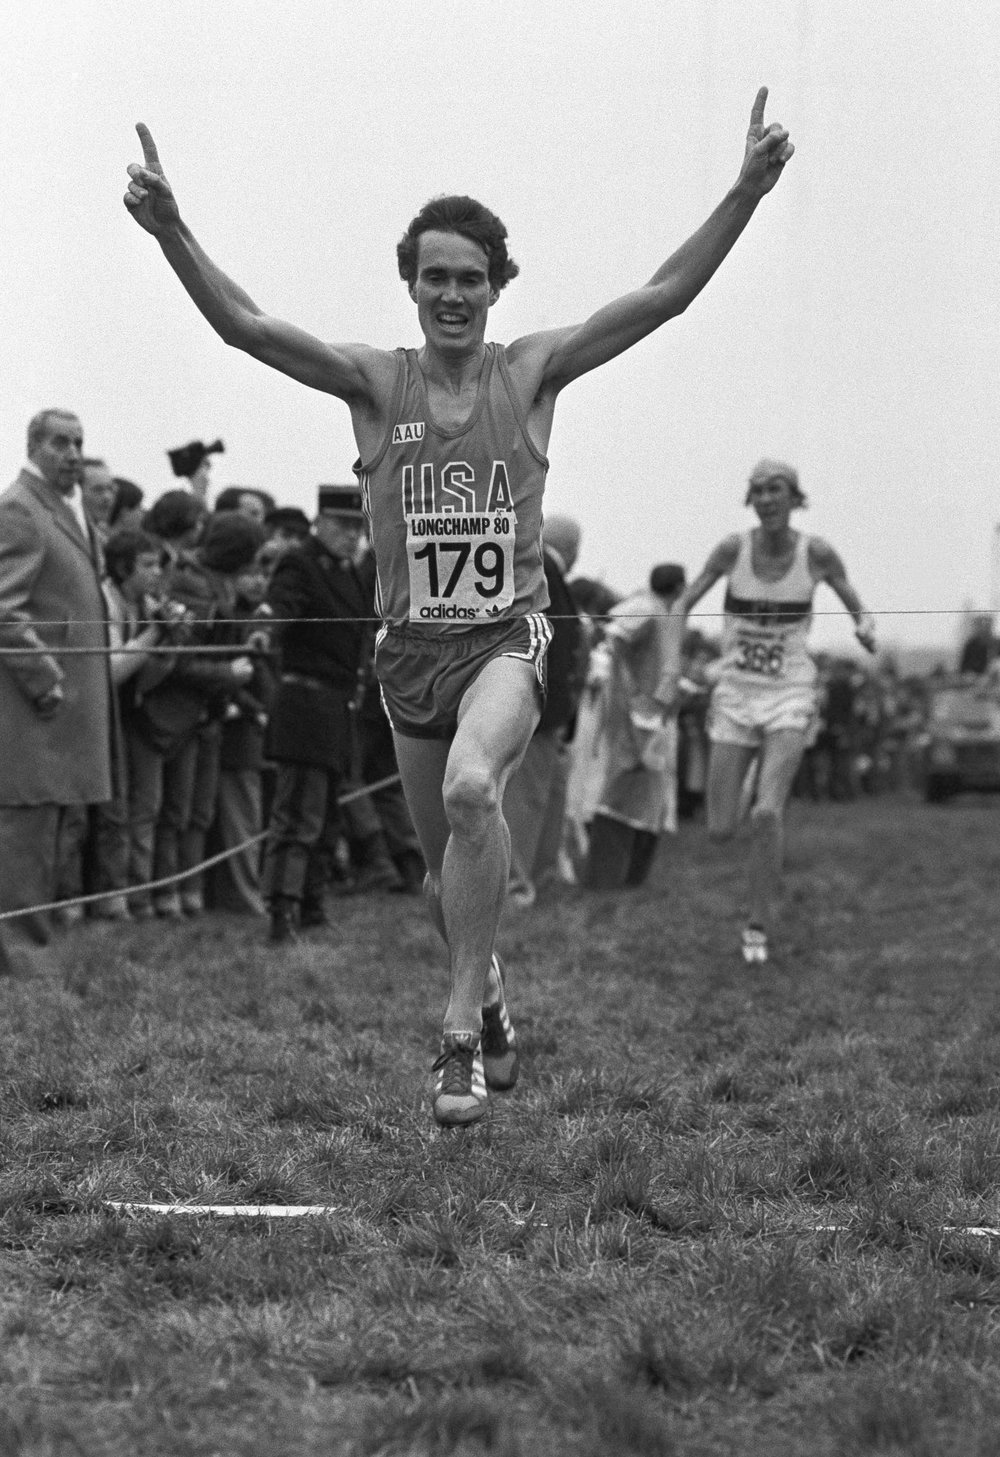 American Distance Legend Craig Virgin winning the 1980 World XC Championships.